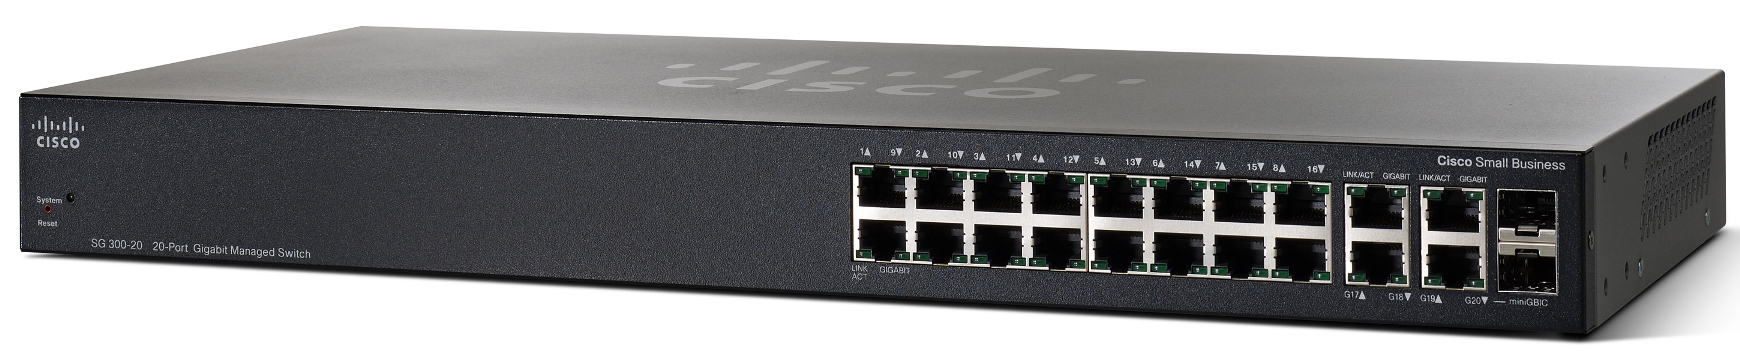 Cisco SG300-20, 18xGiga + 2x SFP Switch